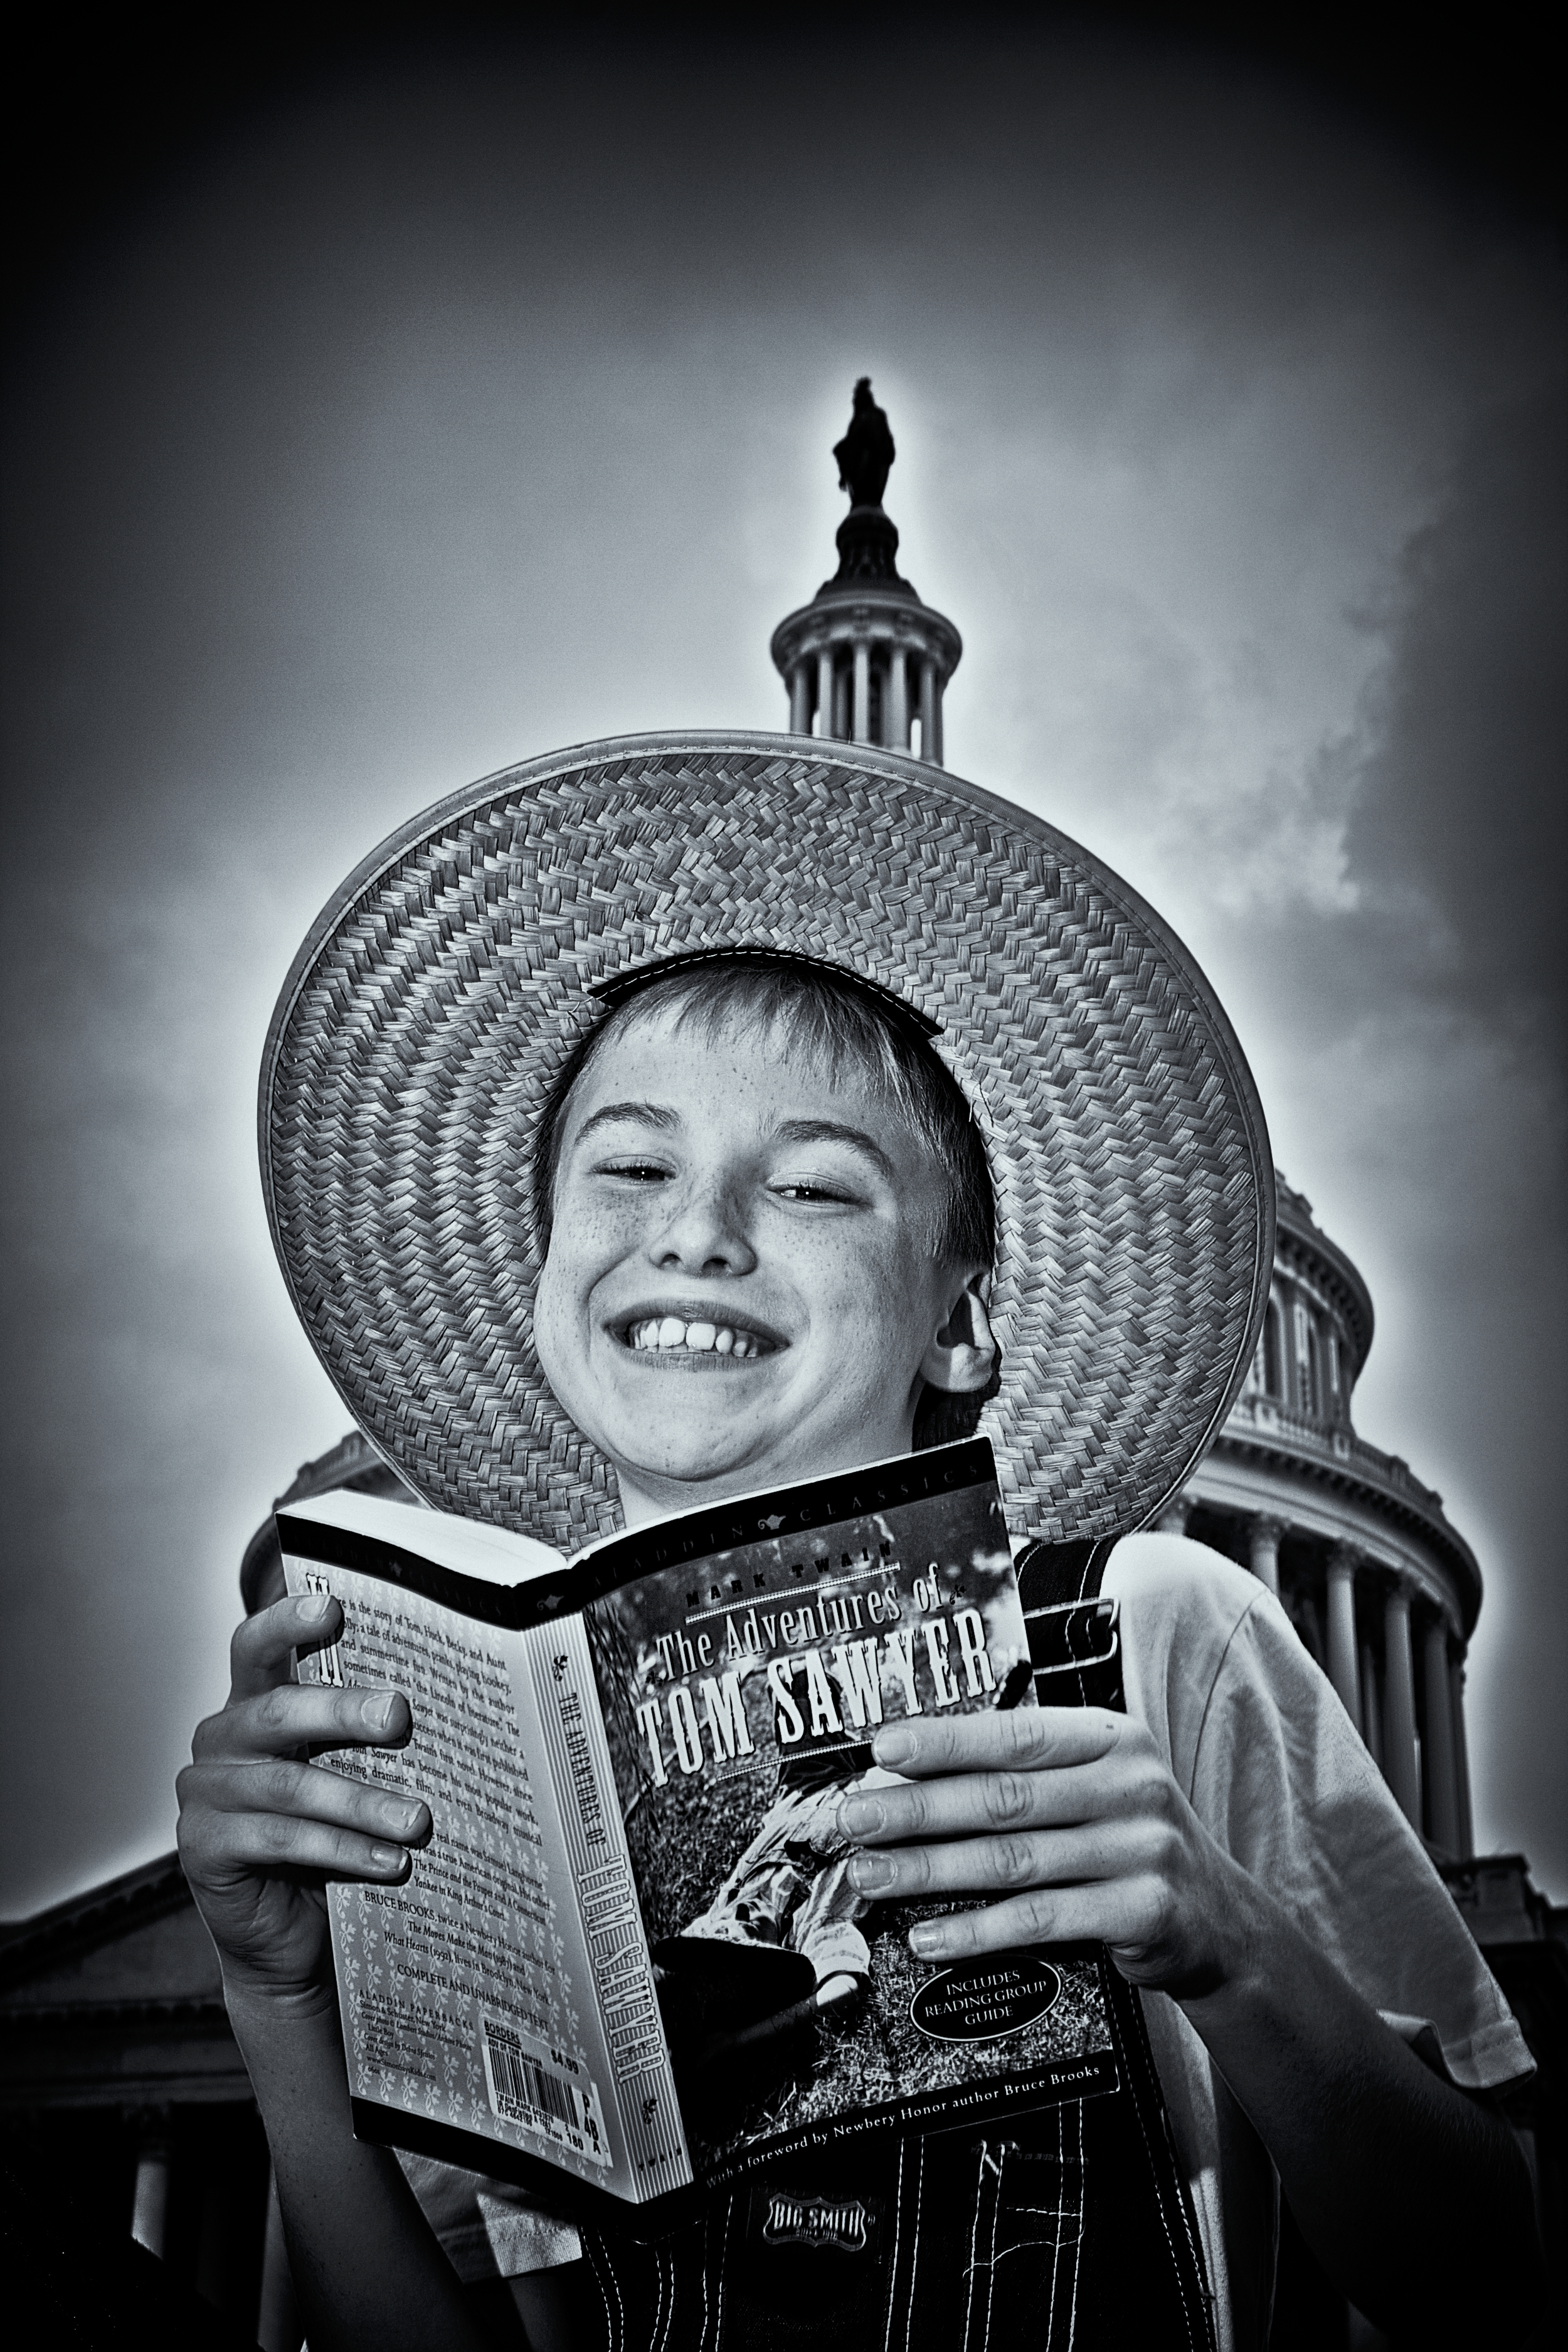 Tom and Huck: Tom Likes to Read about Huck